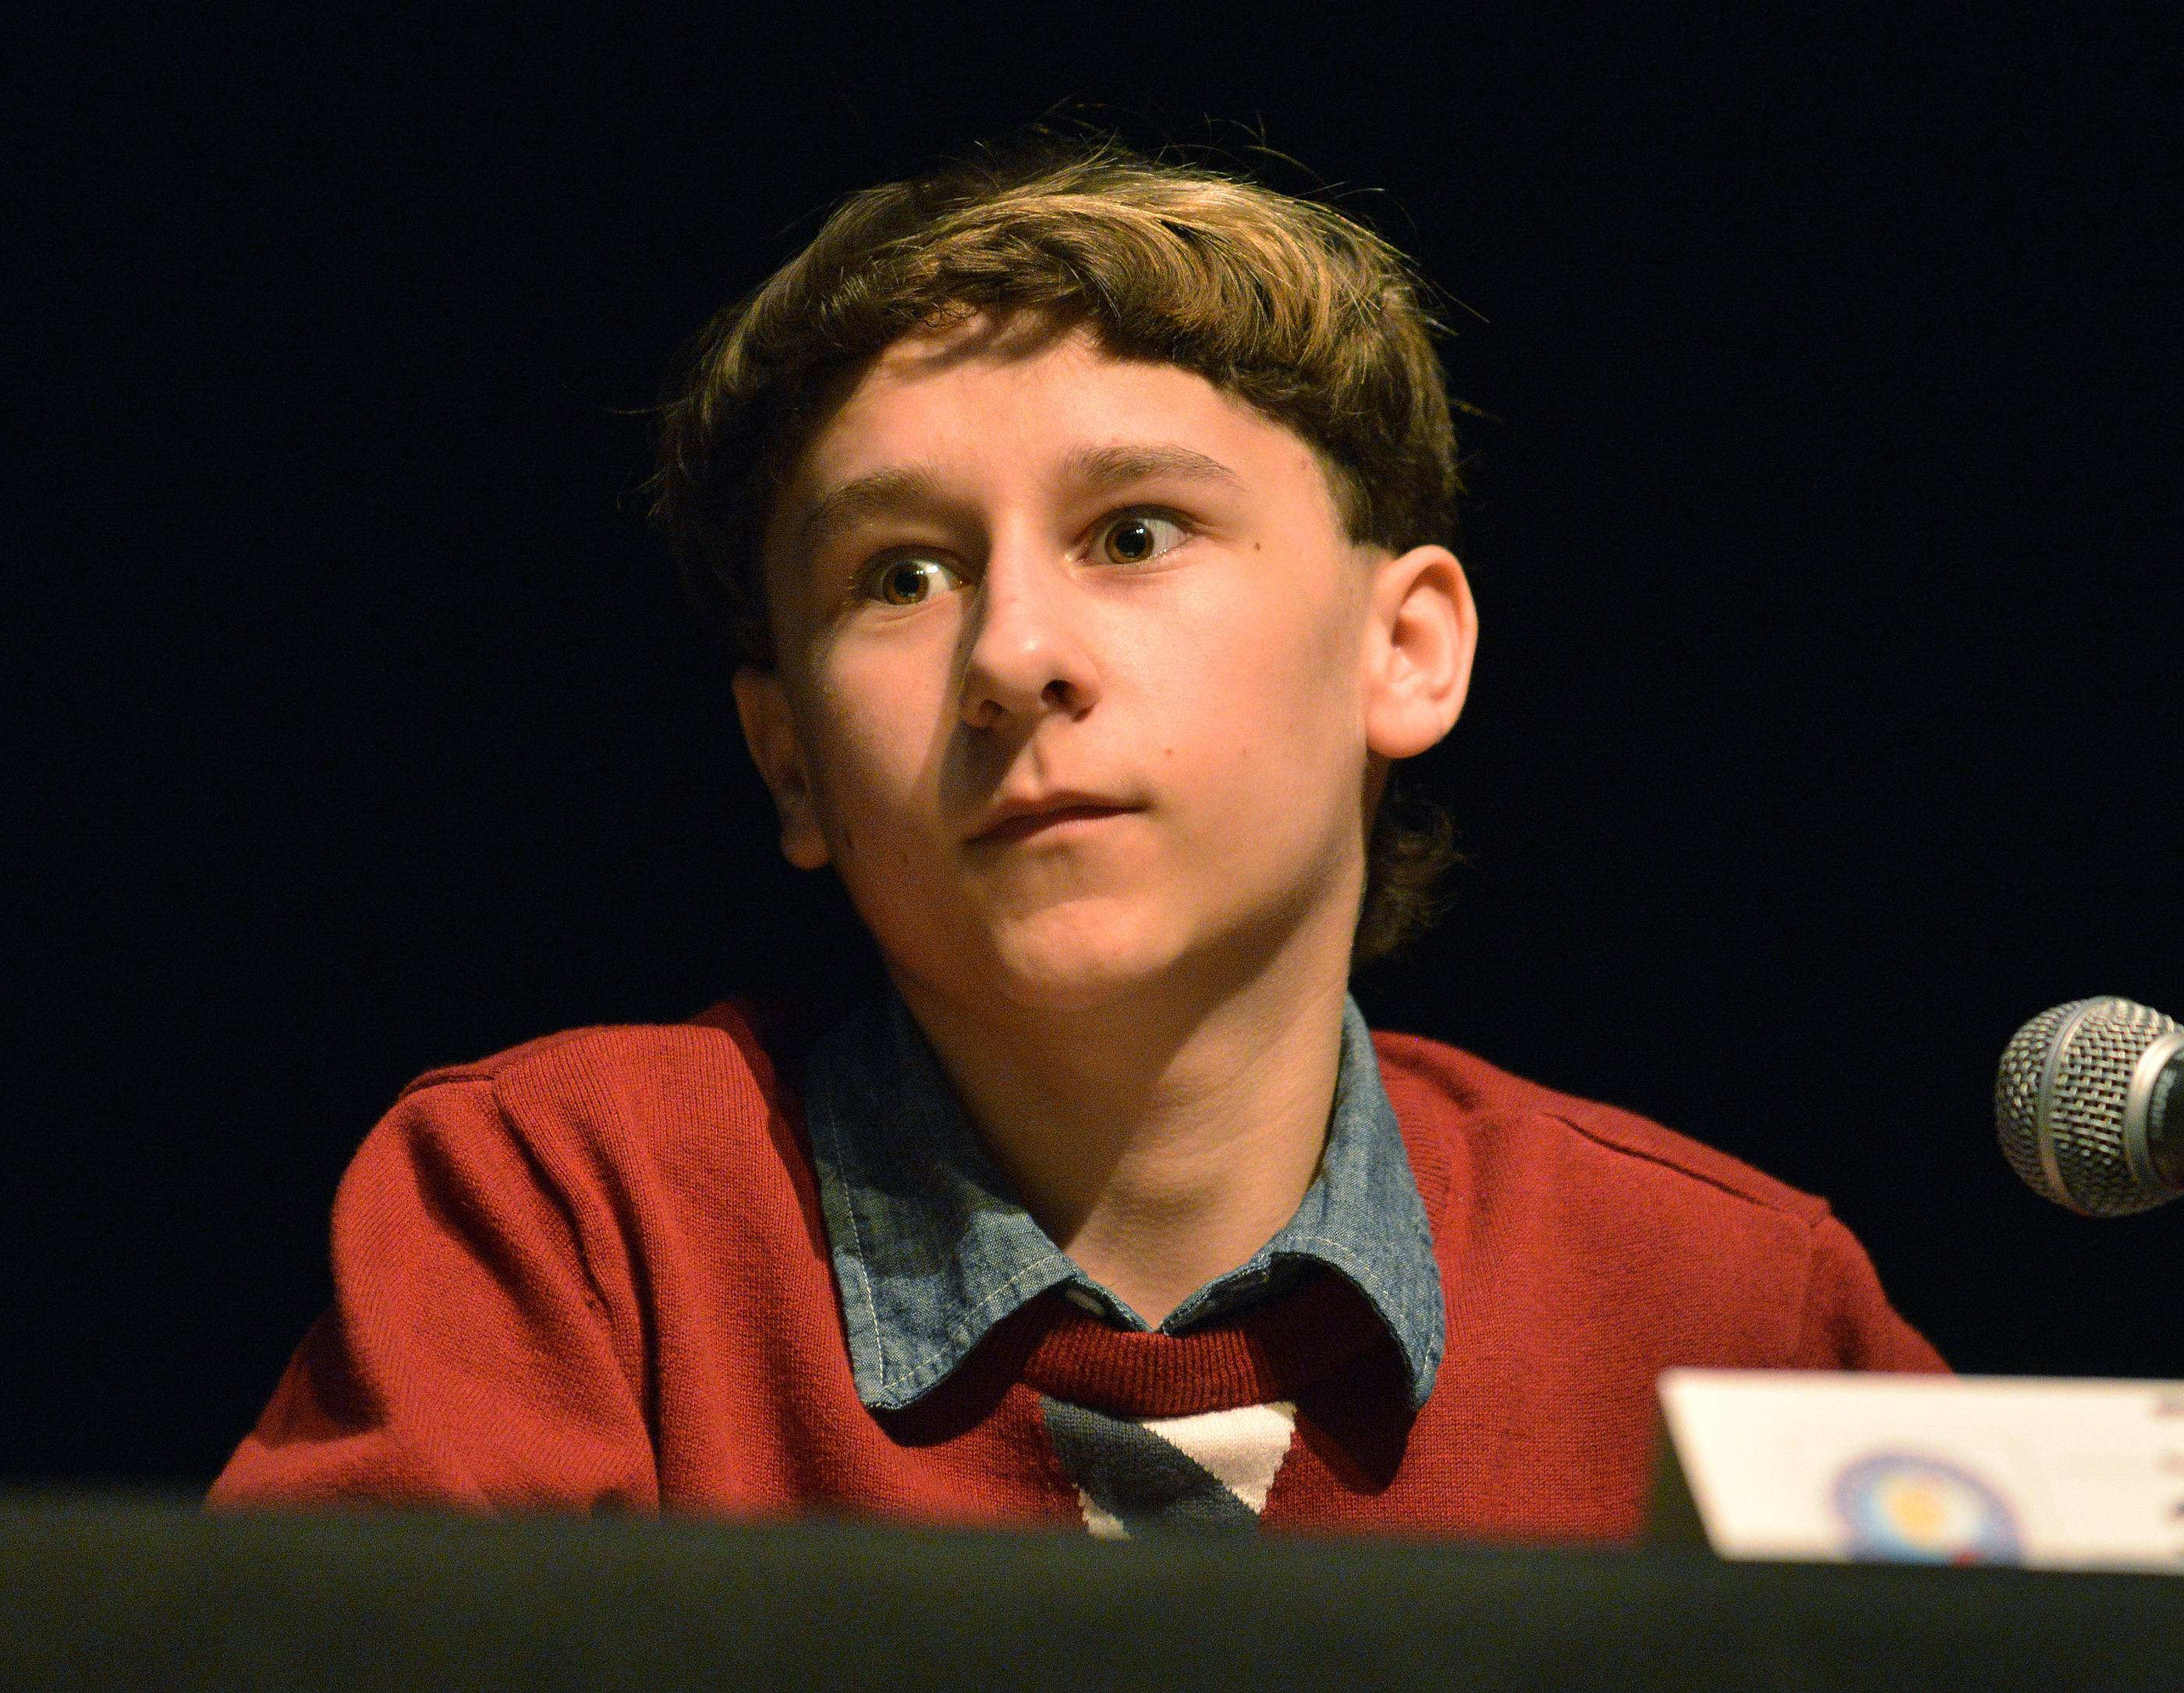 Joshua Smoron of Gurnee realizes he's just taken second place in the championship round of the state competition of the National Geographic Bee, held Friday at the College of DuPage in Glen Ellyn.